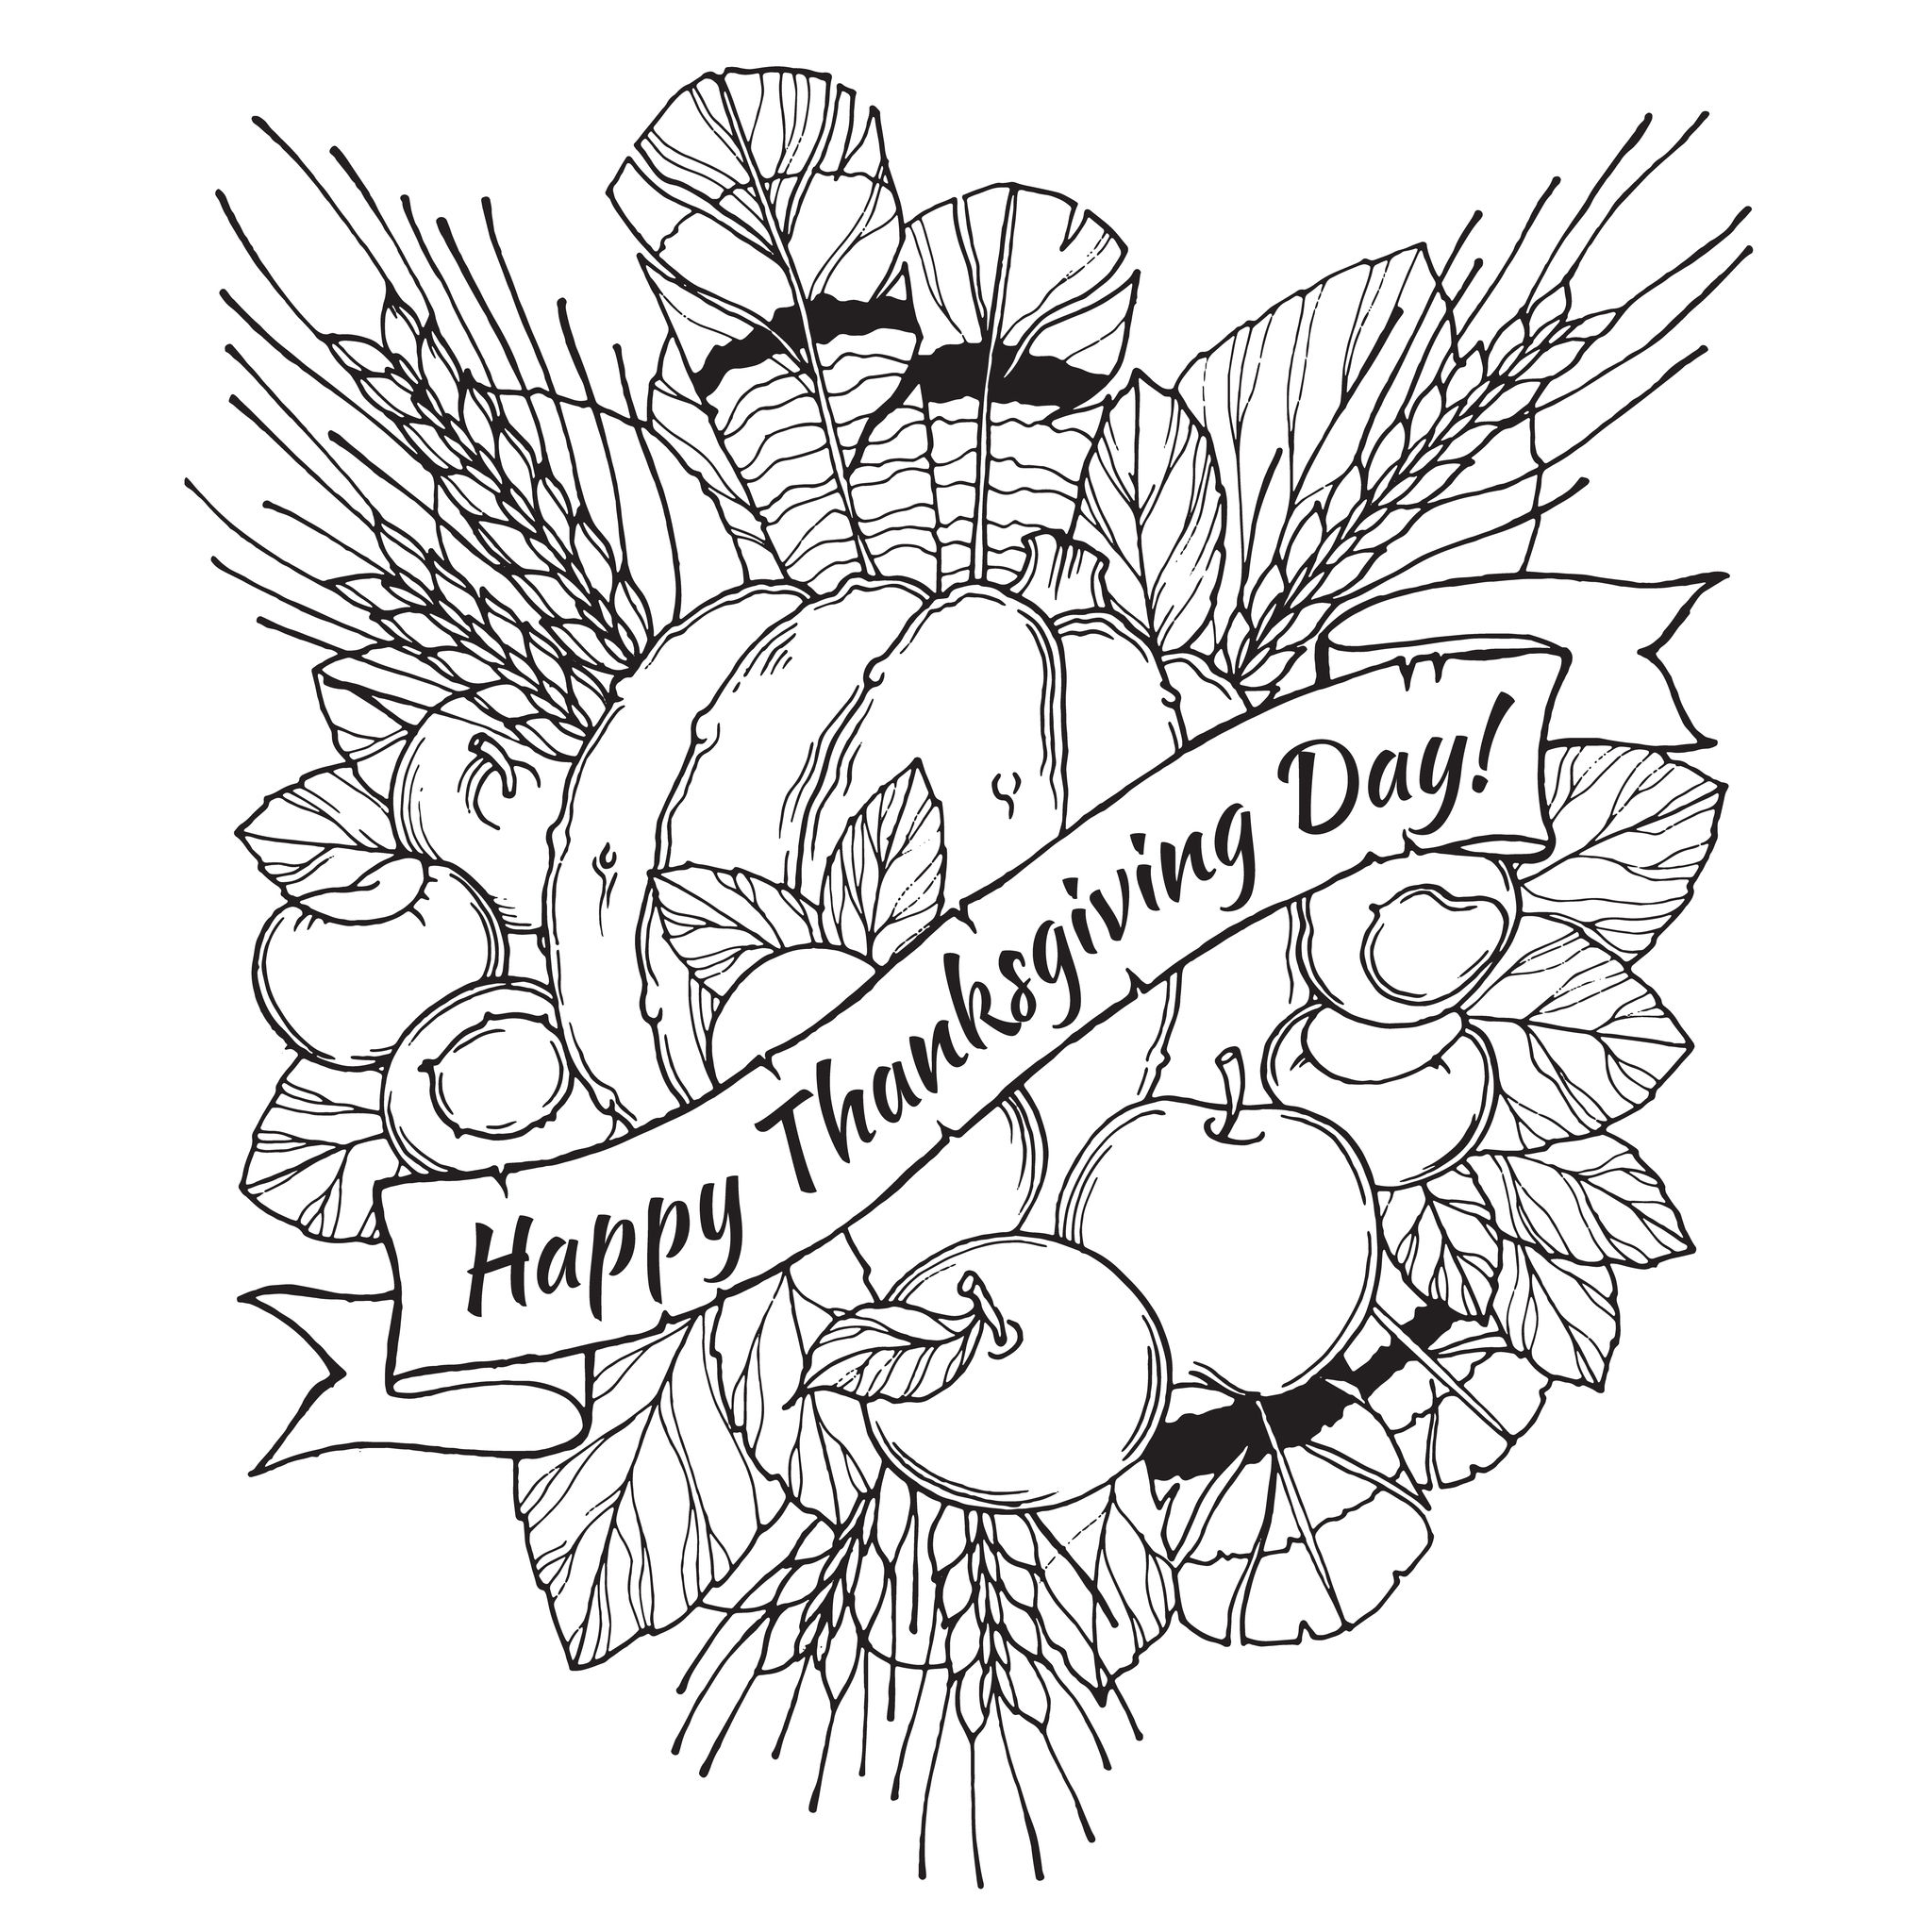 Coloring Page Happy Thanksgiving Day Drawing To Print And Color With Feathers Chestnuts Vegetables Fruits